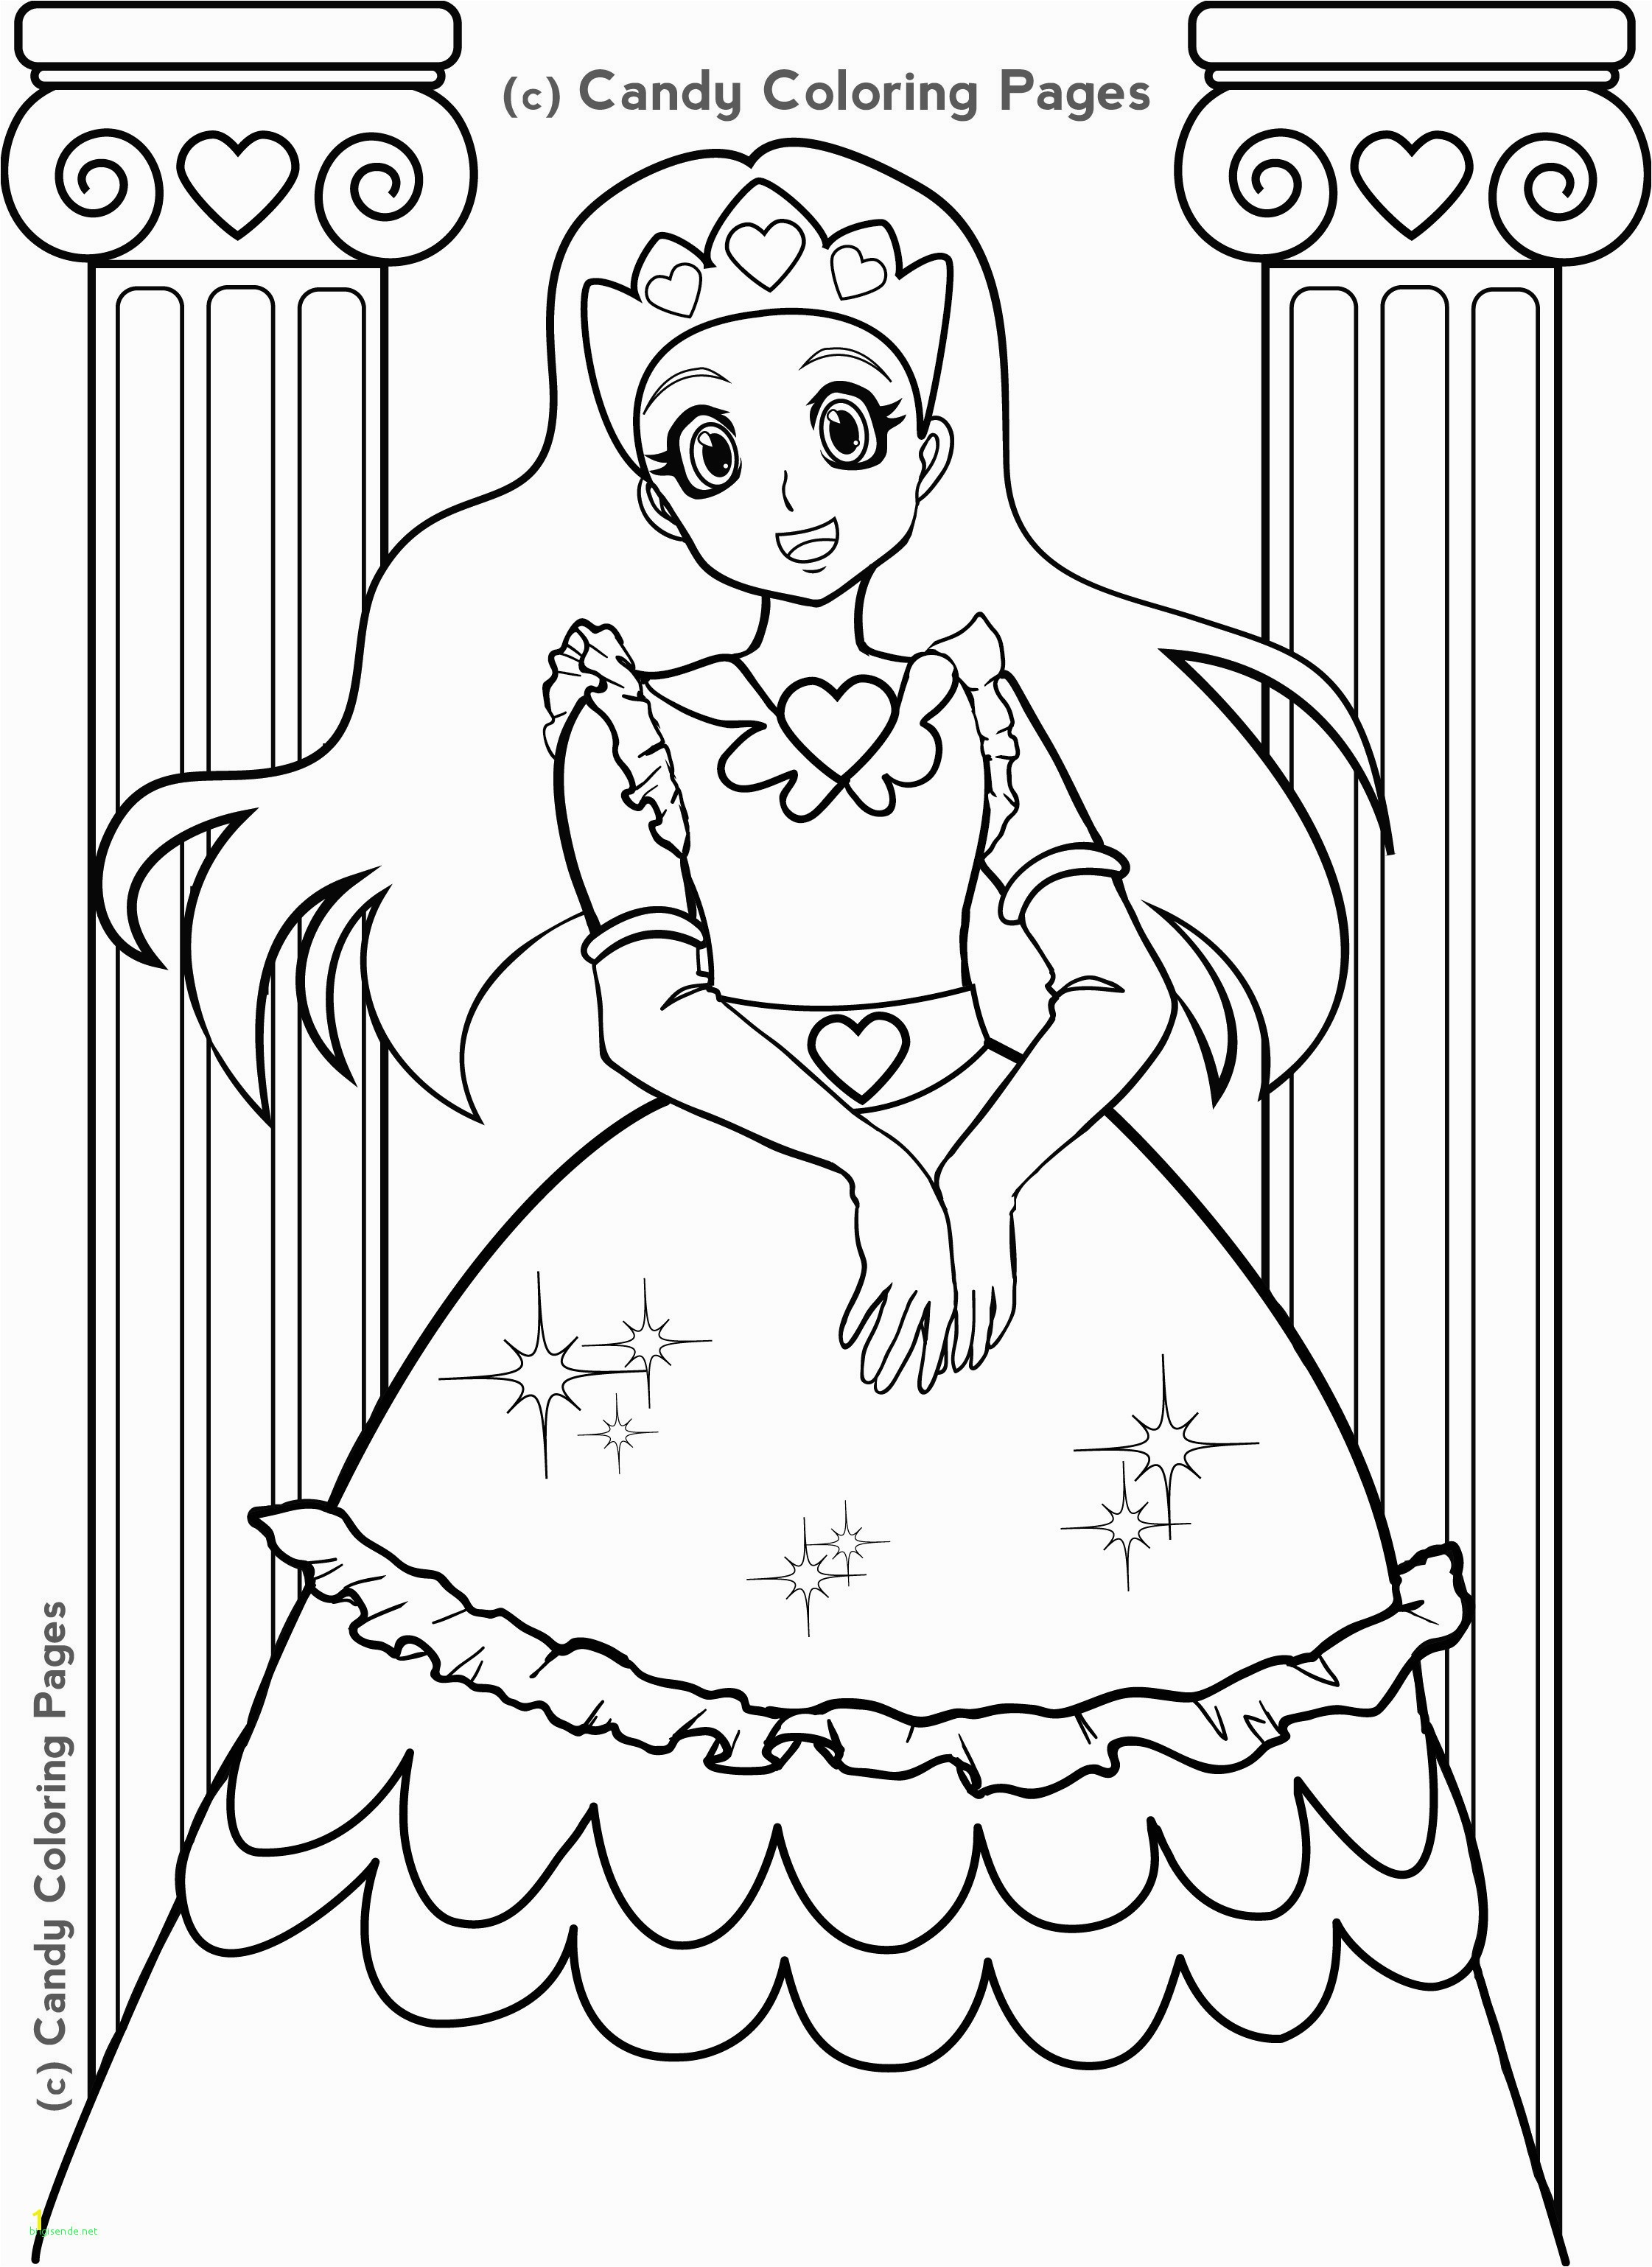 Disney Princess Coloring Pages Free to Print Pdf Inspirational Category Coloring Pages 97